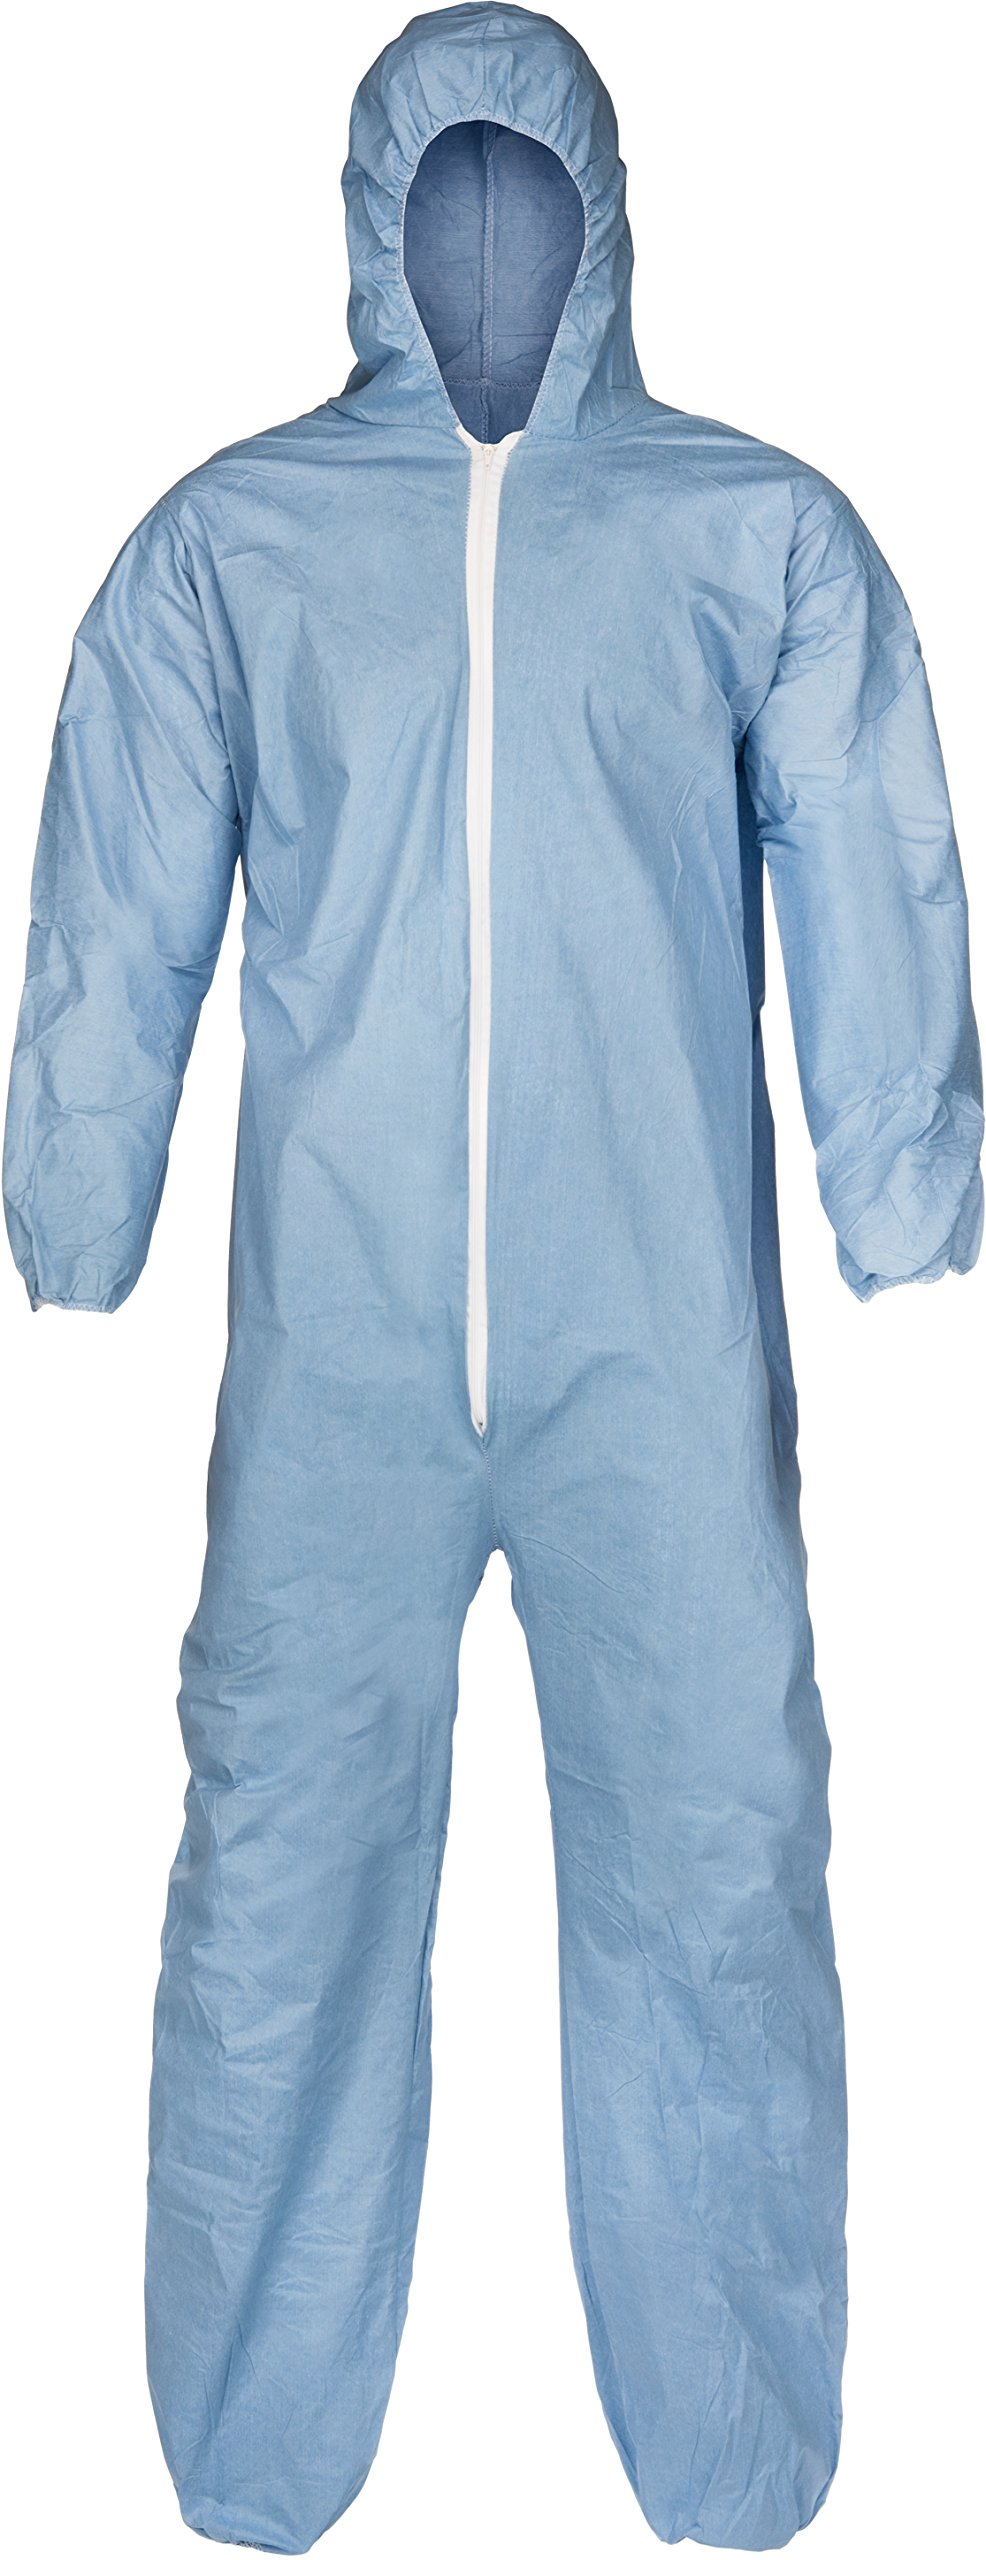 Lakeland Pyrolon Plus 2 Flame-Resistant Disposable Coverall with Hood, Blue, 2X-Large, Elastic Cuff (Case of 25) by Lakeland Industries Inc